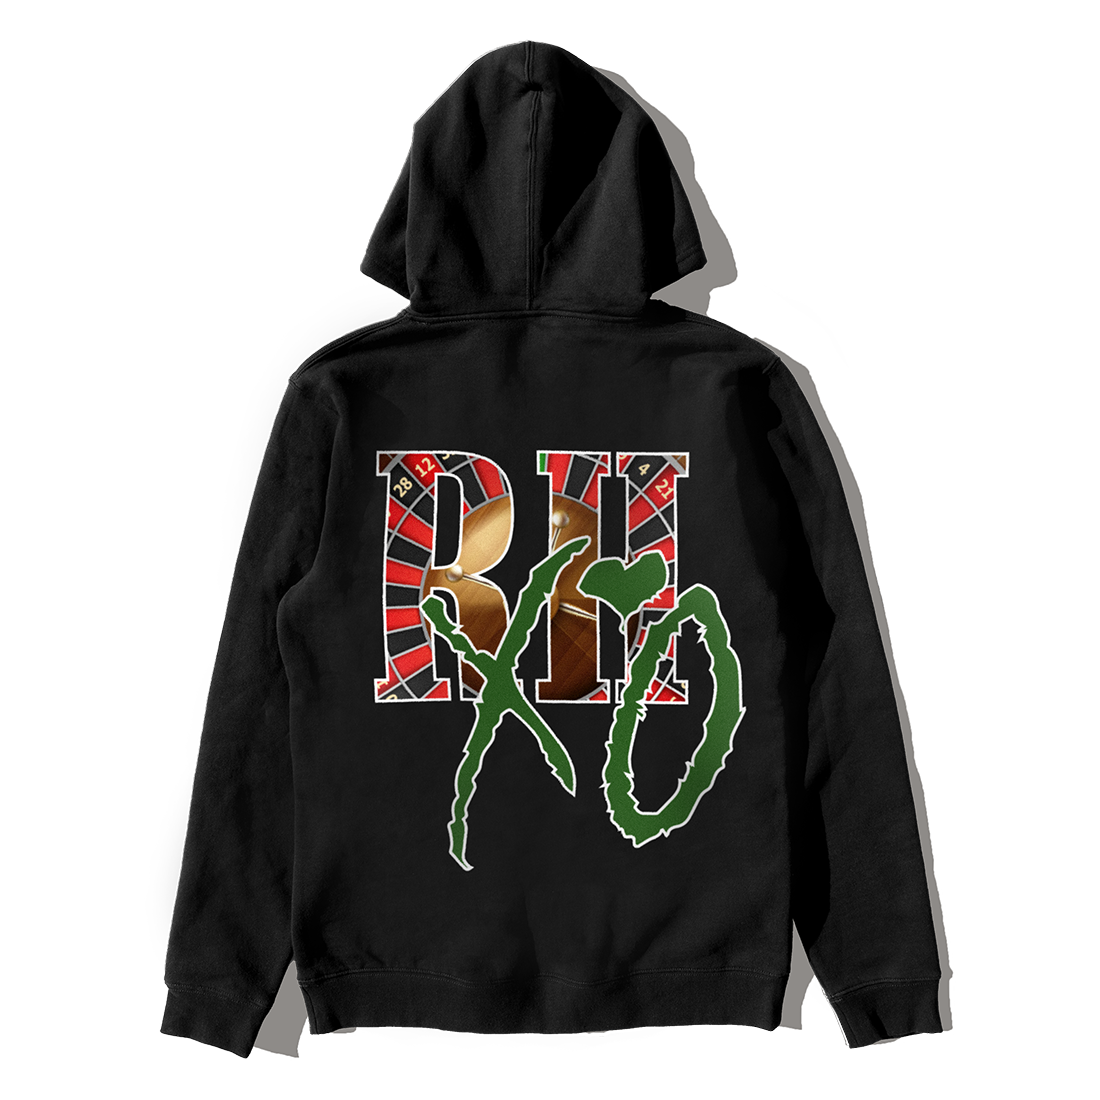 The Weeknd: RHUIGI AFTER HOURS CASINO PULLOVER HOOD